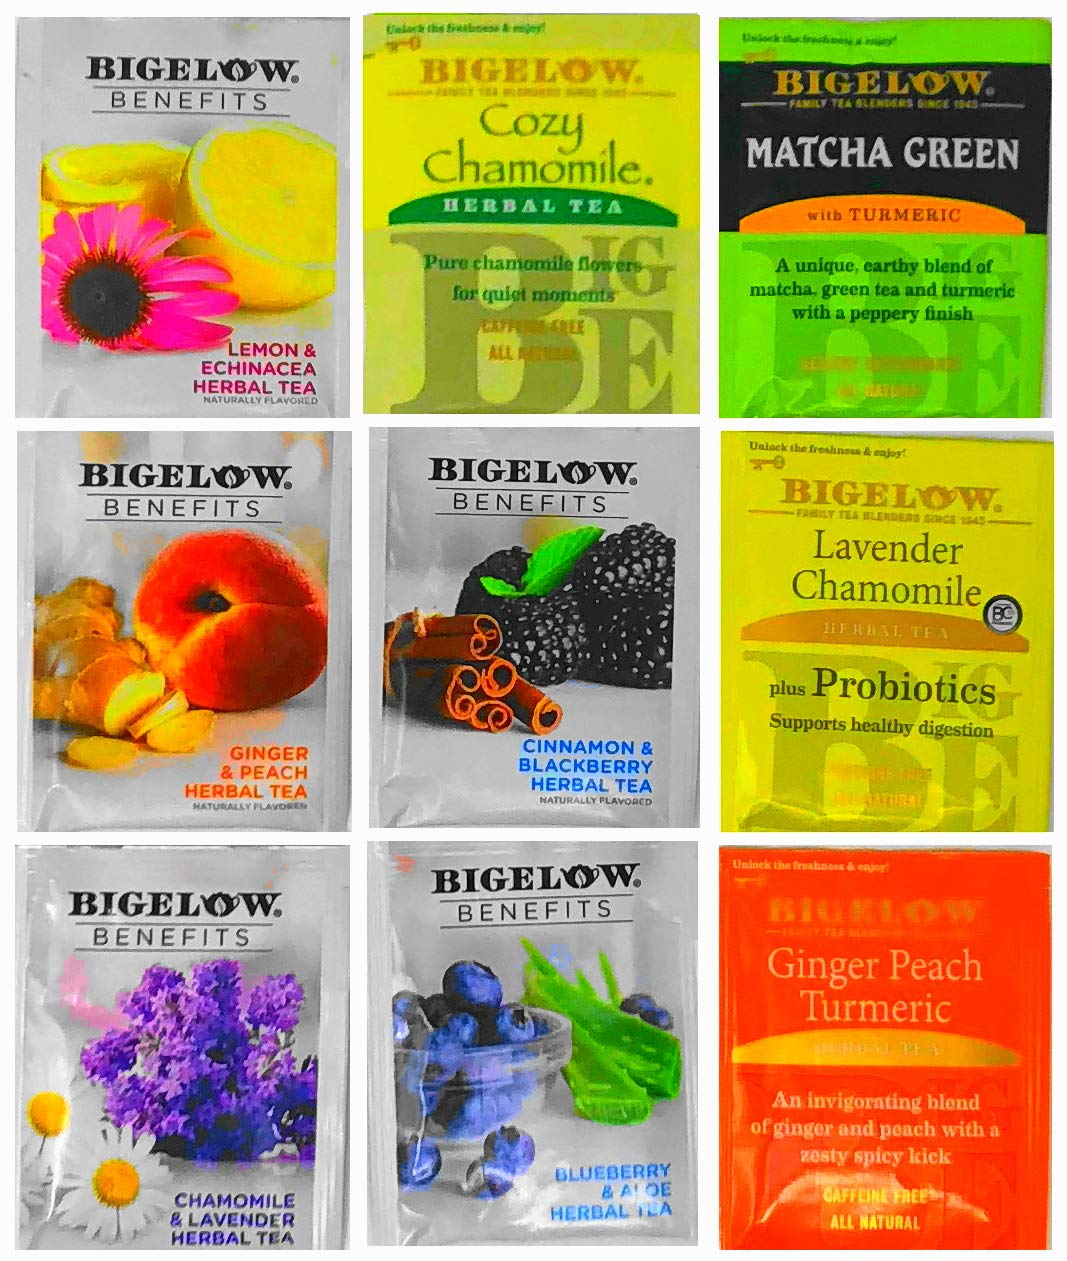 BIGELOW Tea Assorted Sampler Gift Box- 120 Individually Foil Wrapped Bags, 40 Different Flavors : Green Teas, Herbal Teas, Black Teas, Bigelow Benefits Teas and More. The Perfect Gift Set by ONDAGO (Image #4)